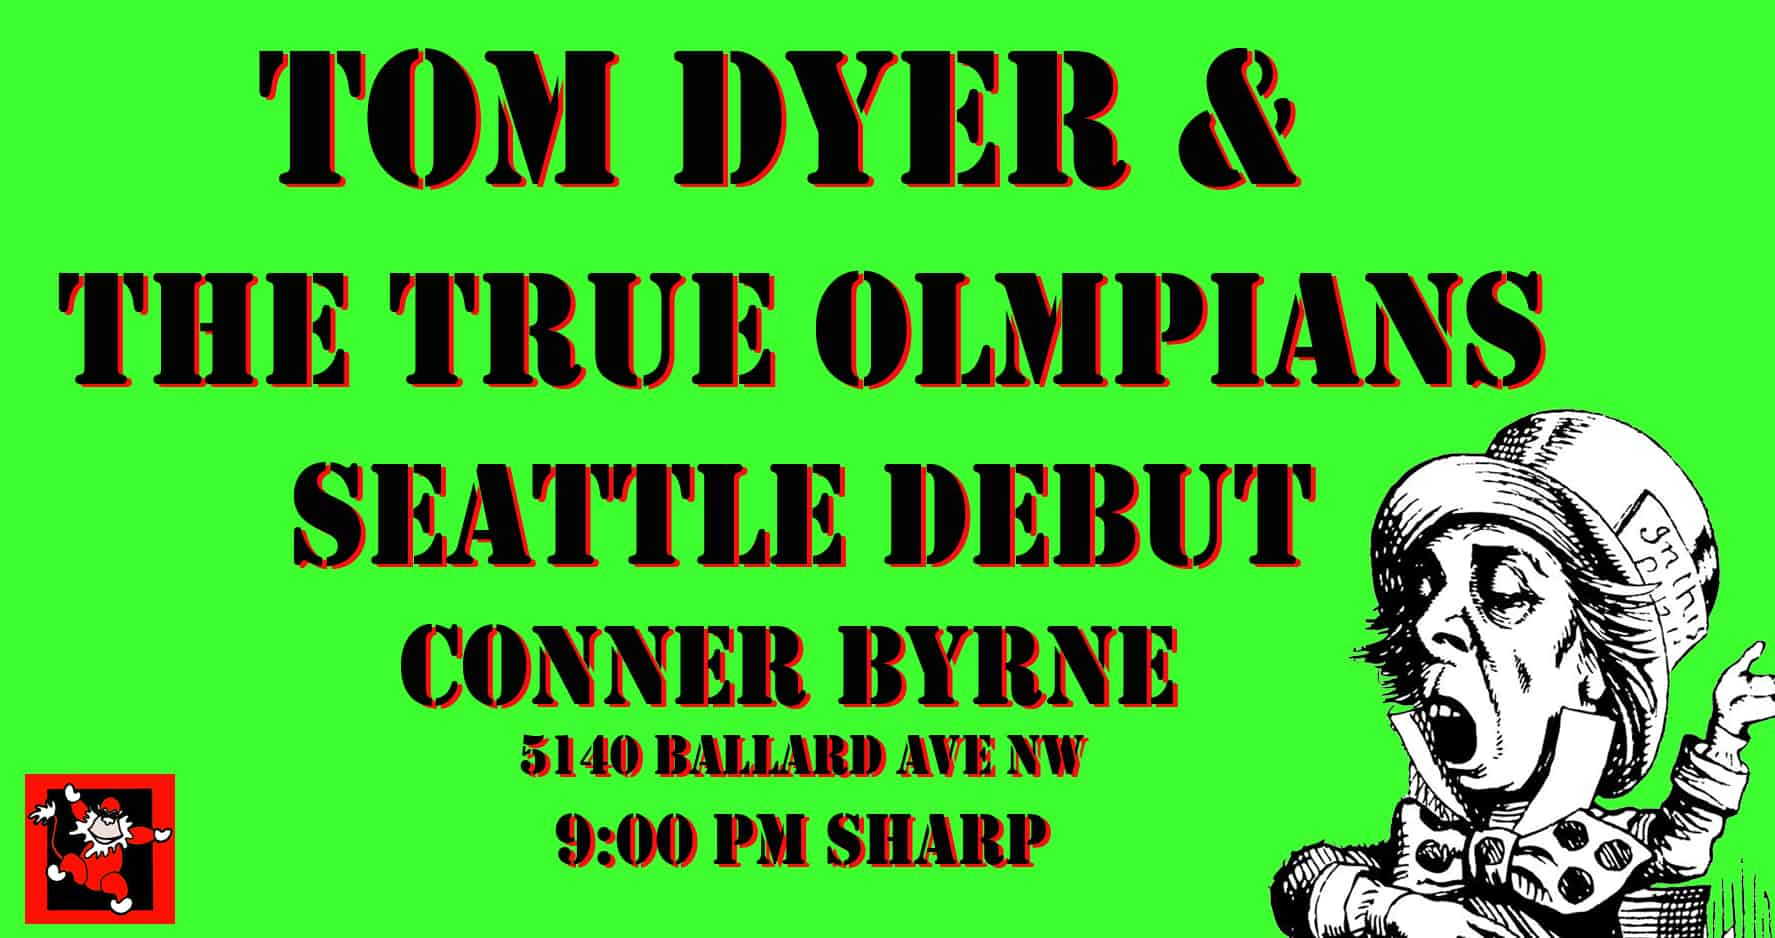 Tom Dyer & True Olympians to Make Seattle Debut!